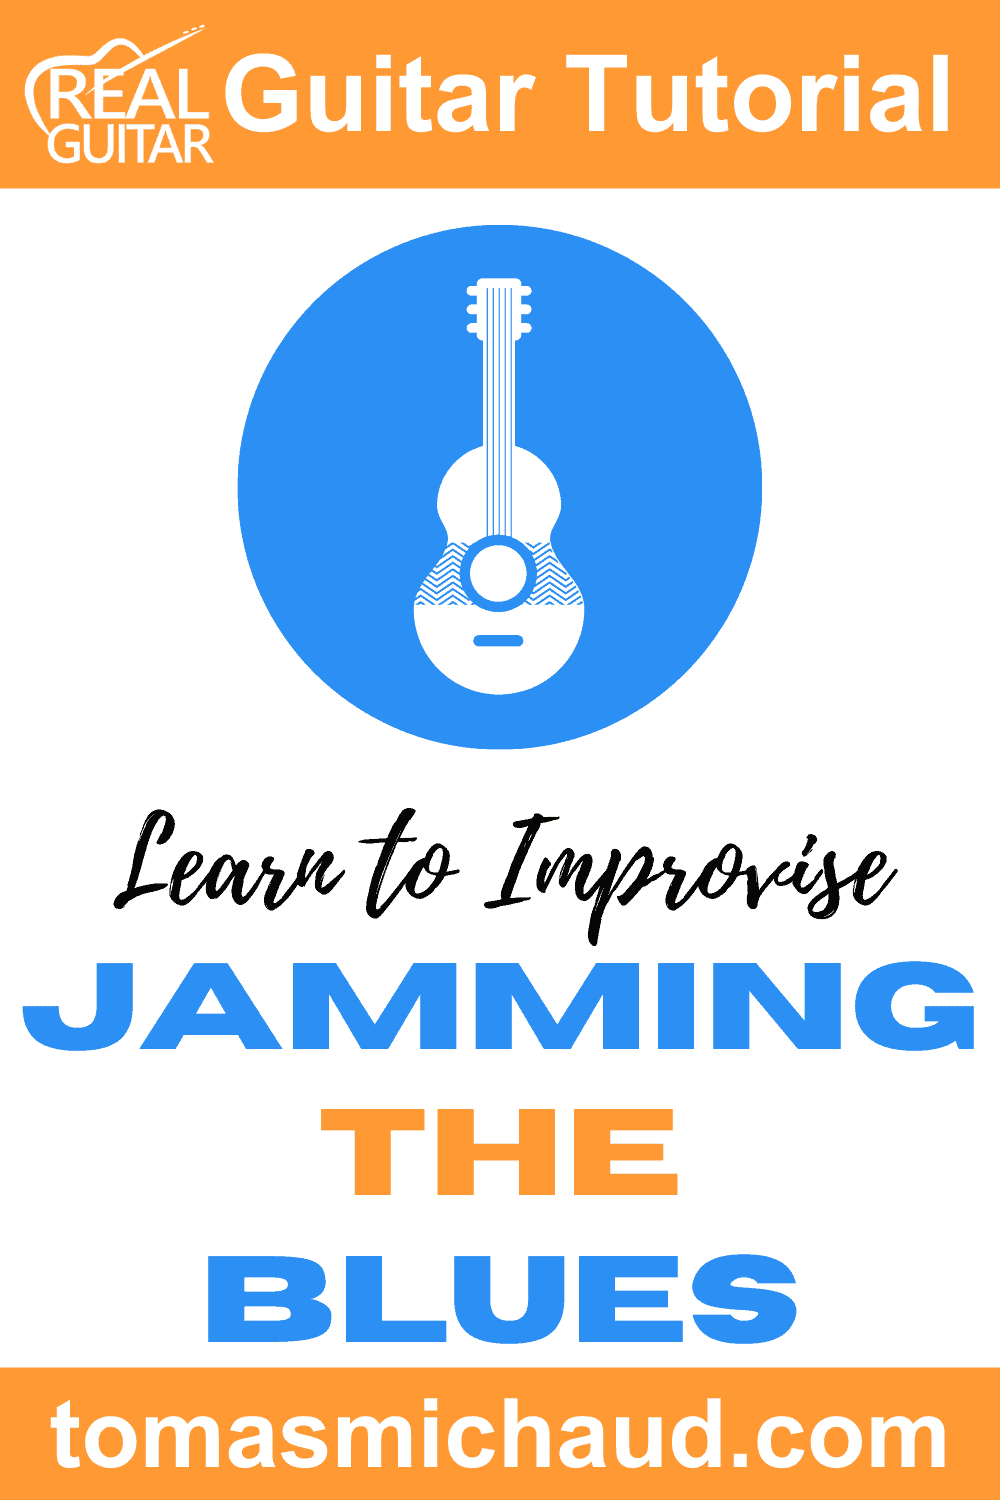 Learn to Improvise. Jamming the Blues